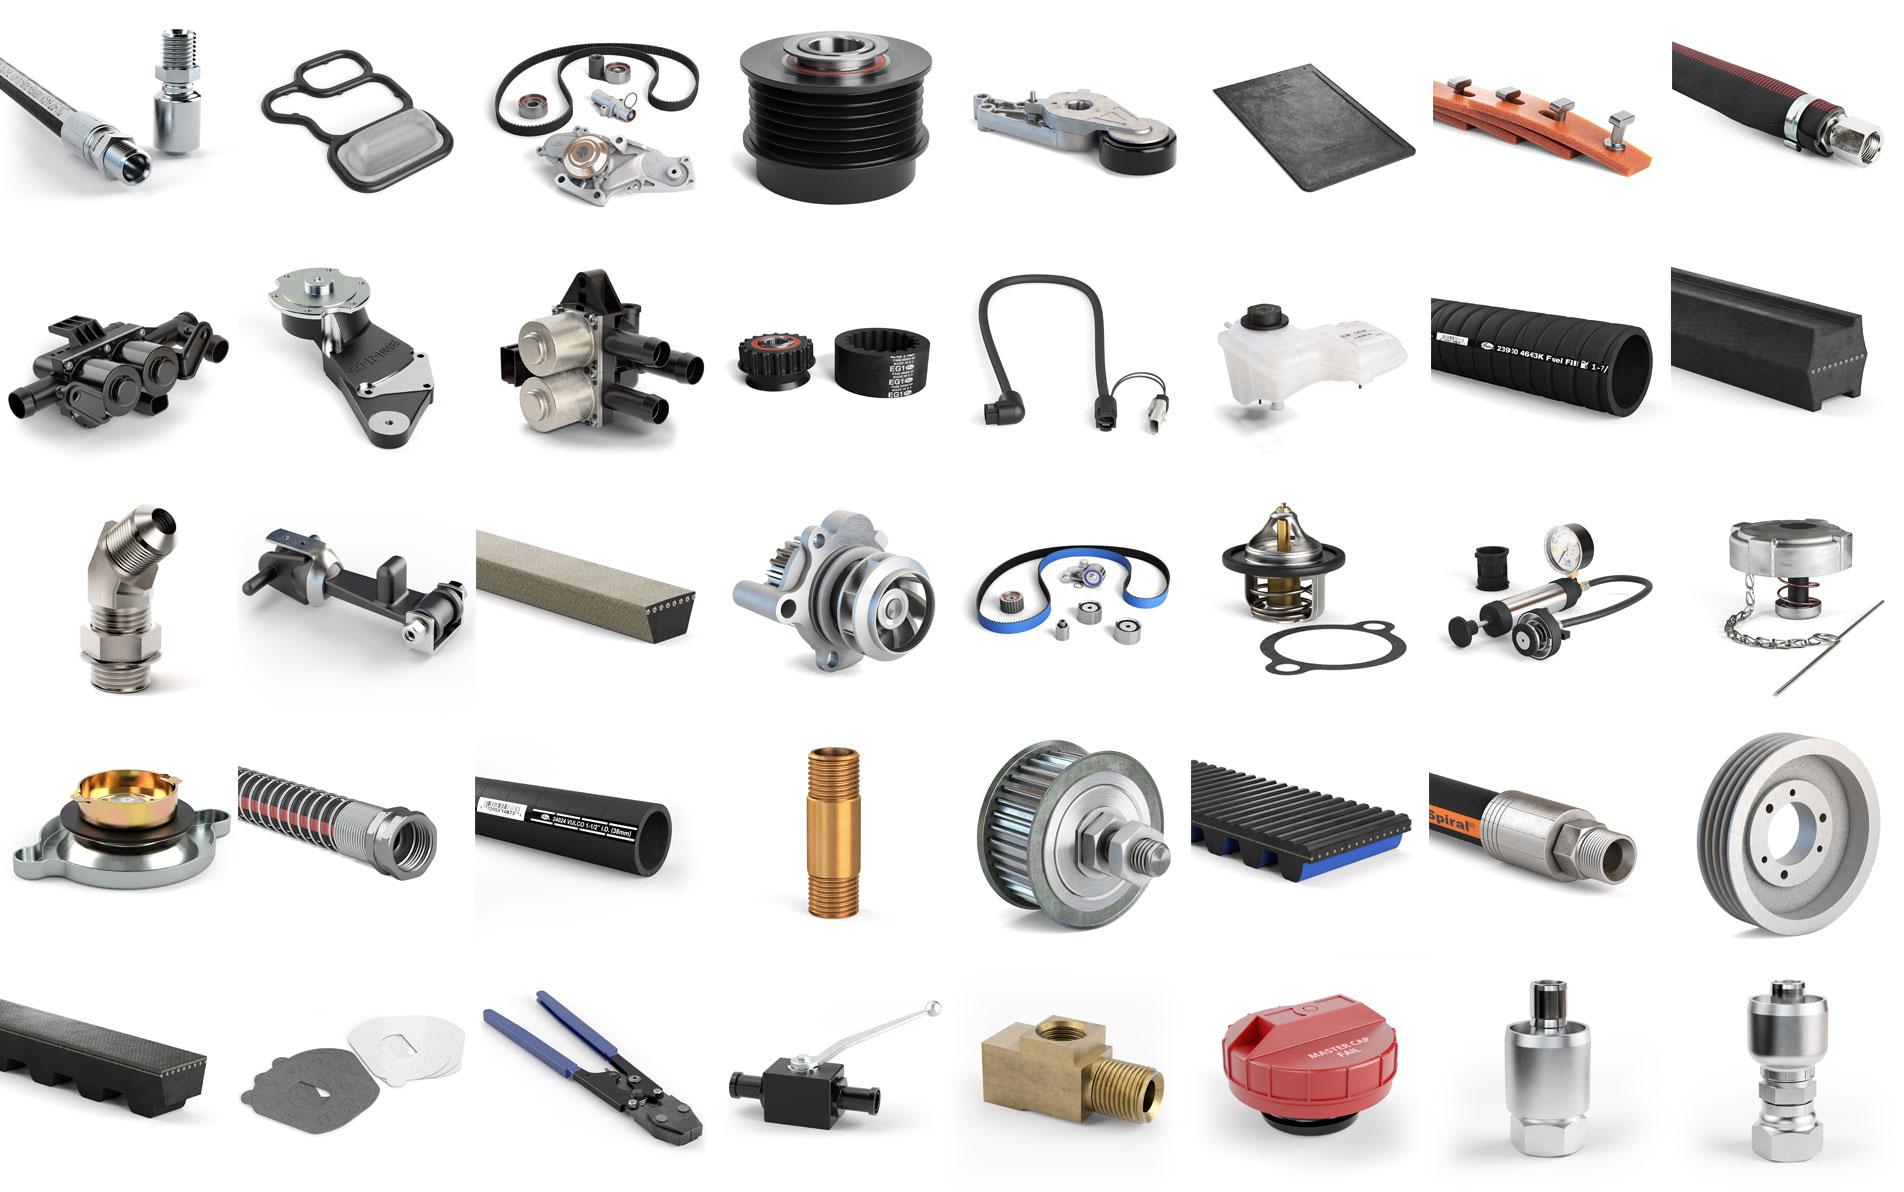 35 evenly spaced industrial and automotive parts from Gates